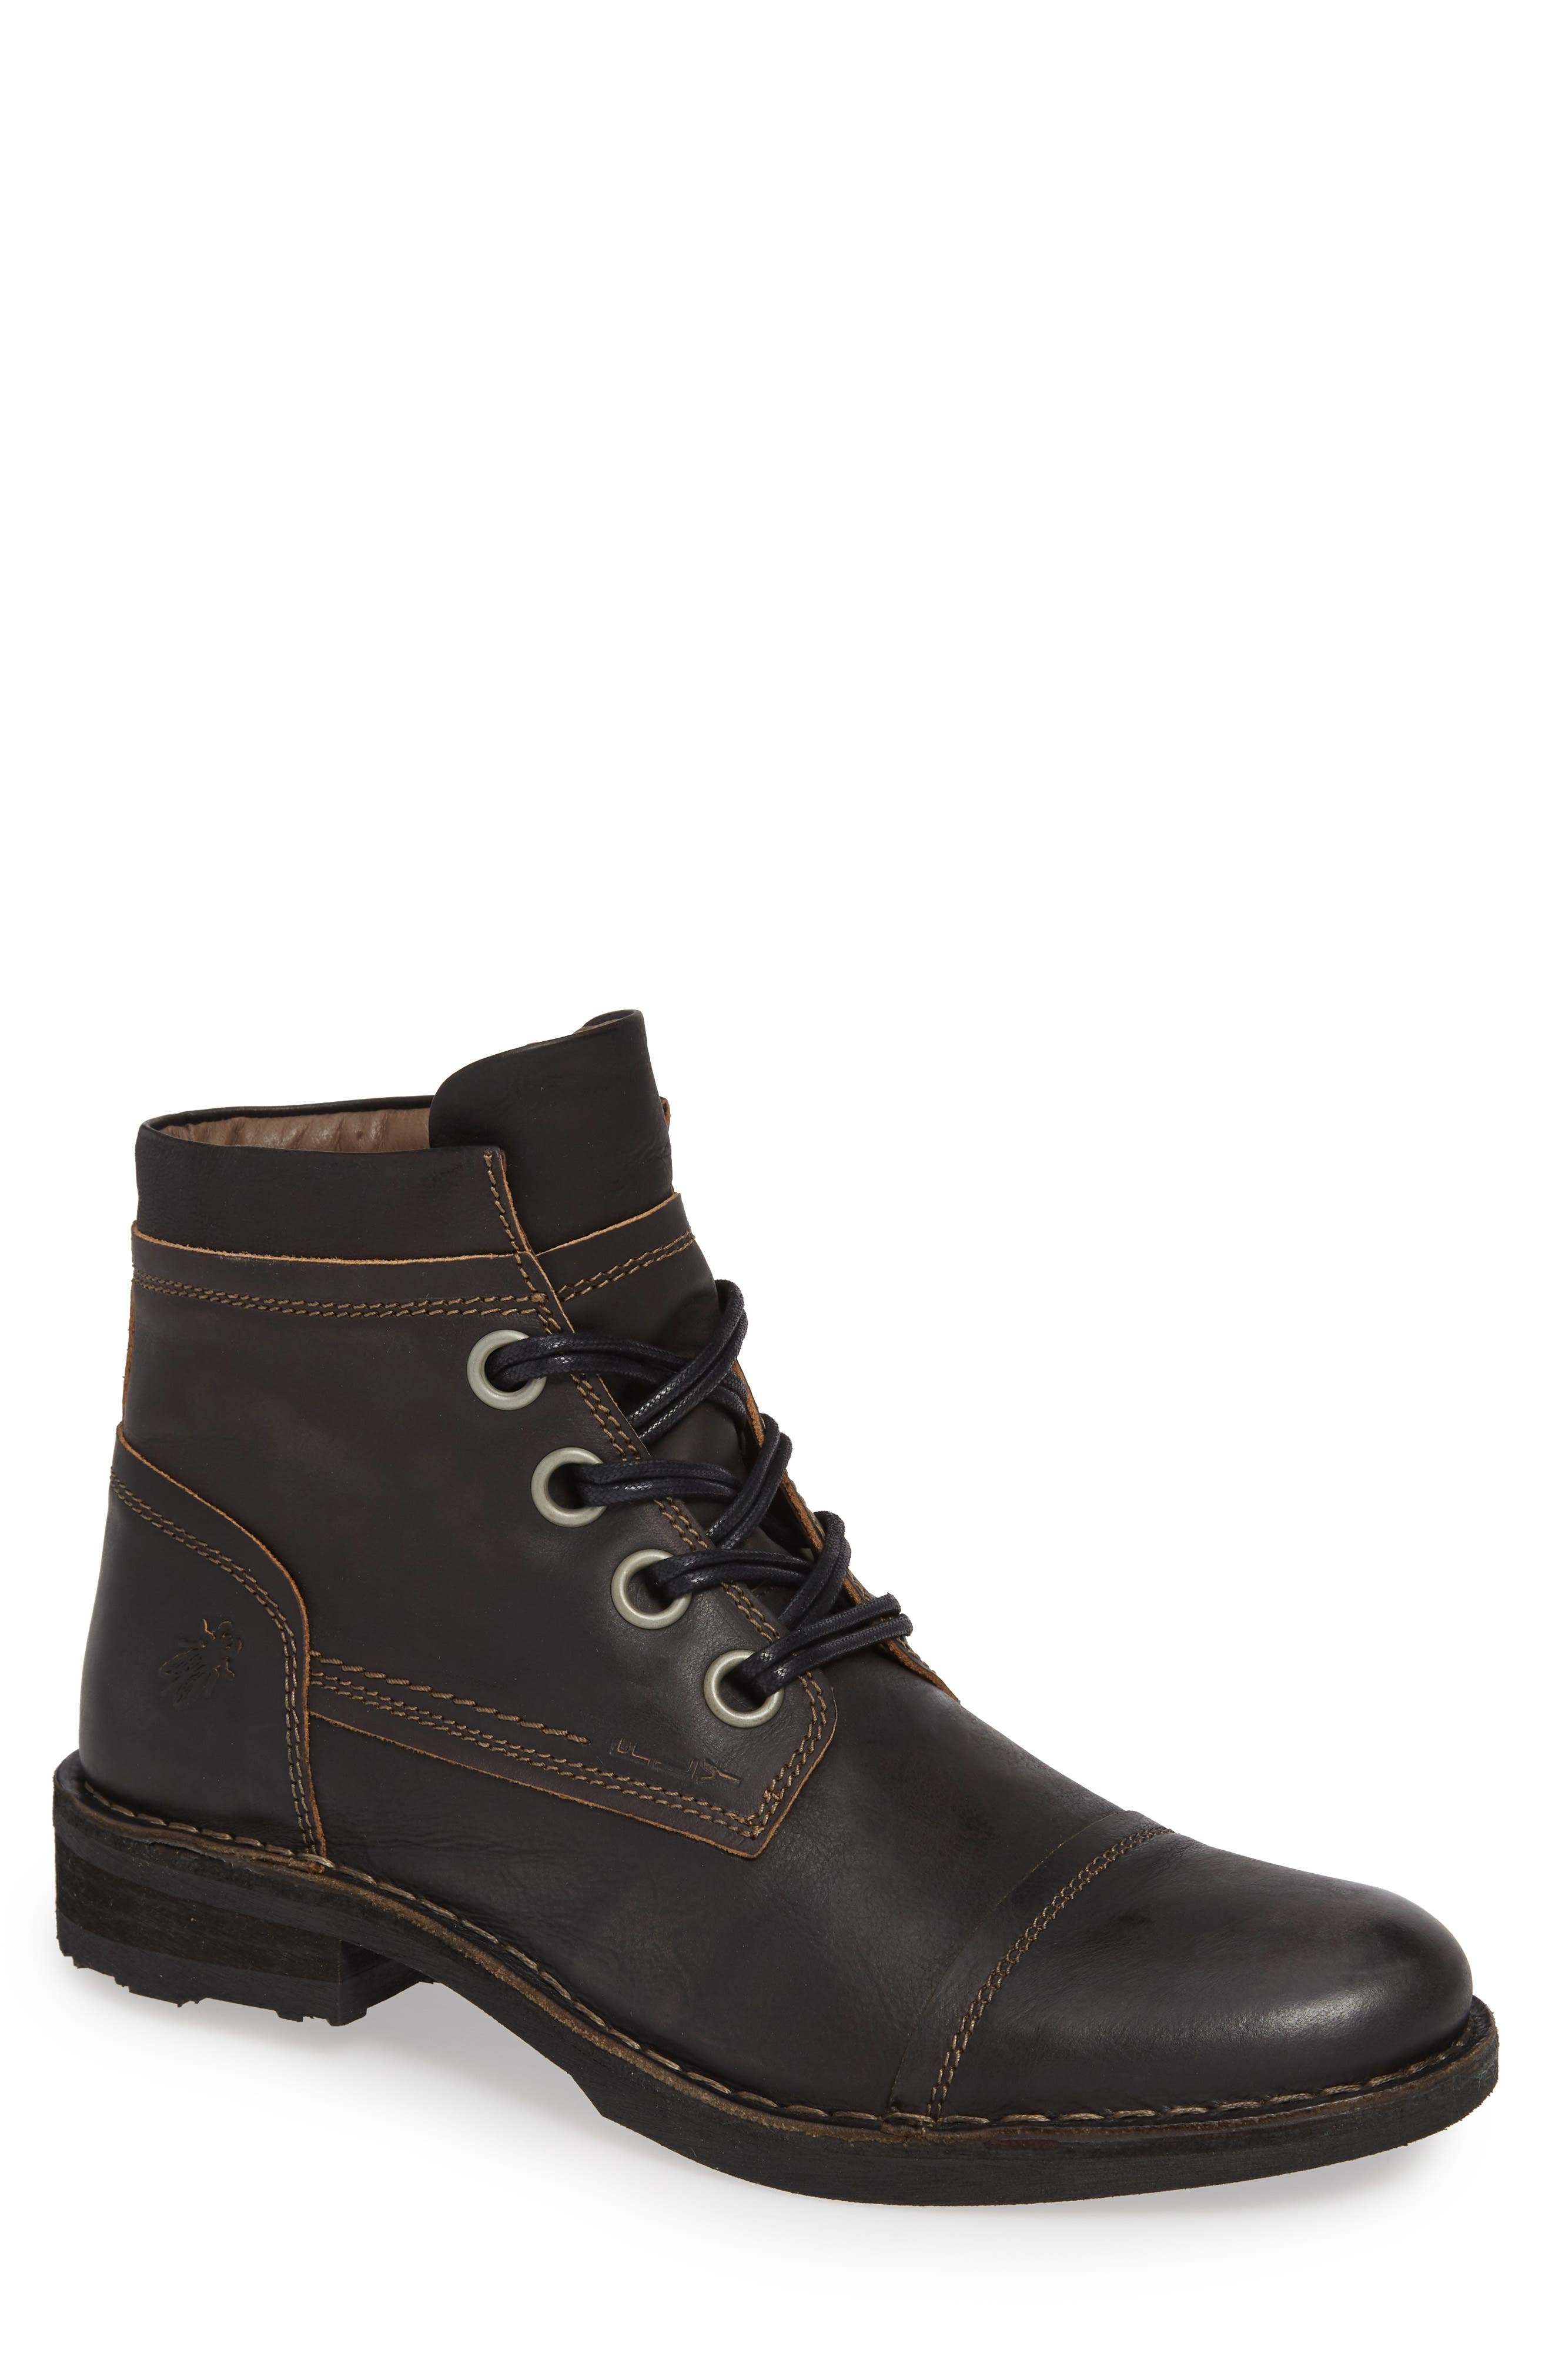 Rize Cap Toe Boot,                         Main,                         color, BLACK SEBTA